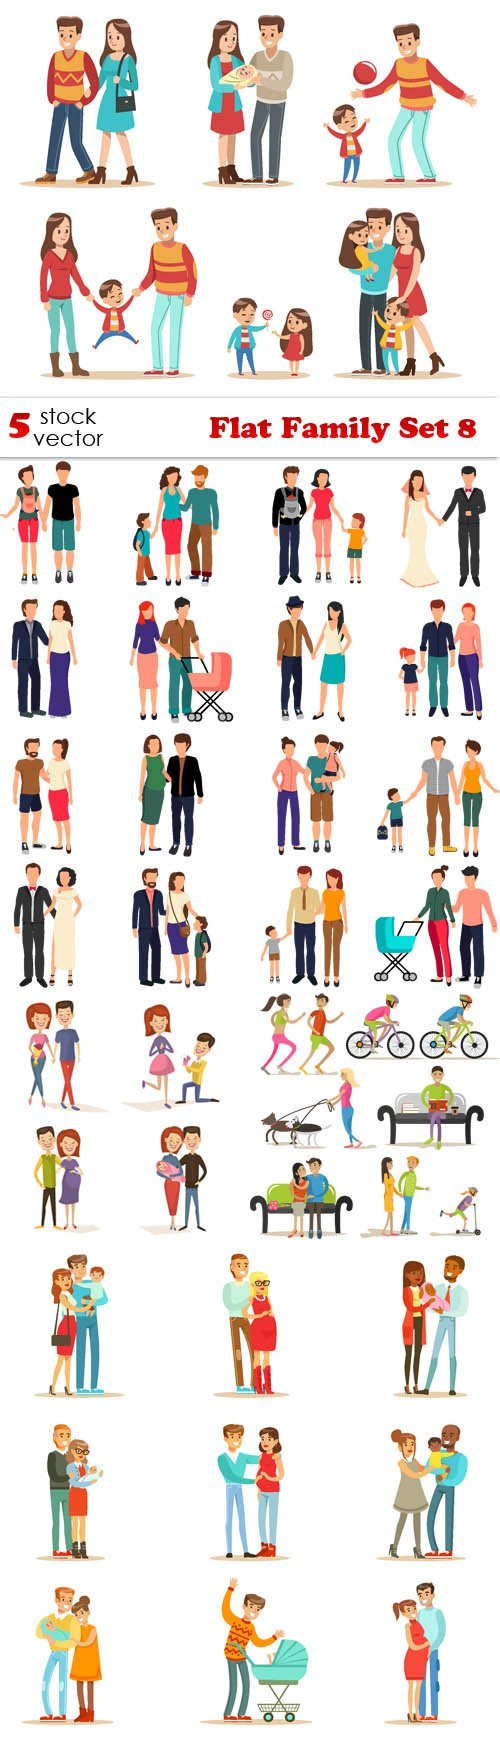 Vectors - Flat Family Set 8